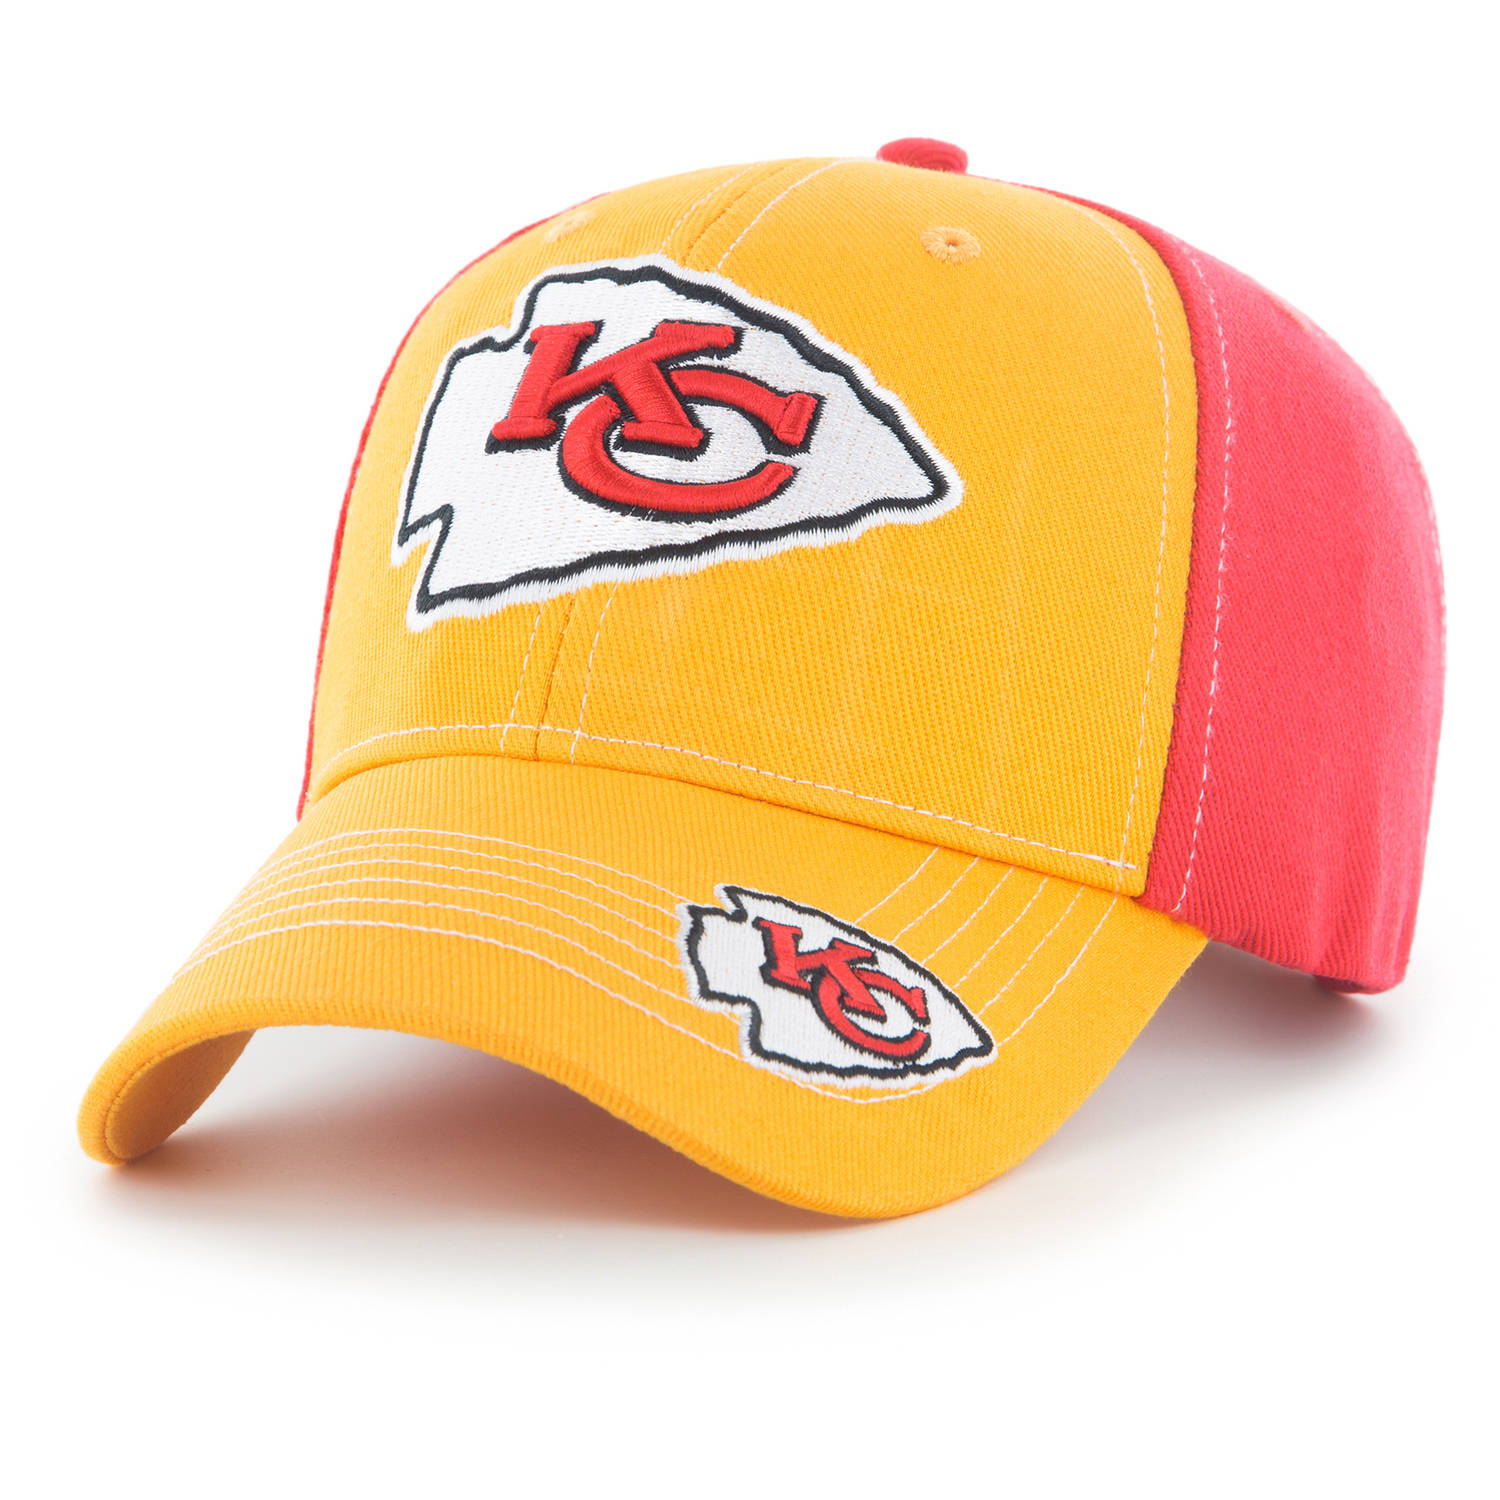 NFL Kansas City Chiefs Revolver Cap / Hat by Fan Favorite